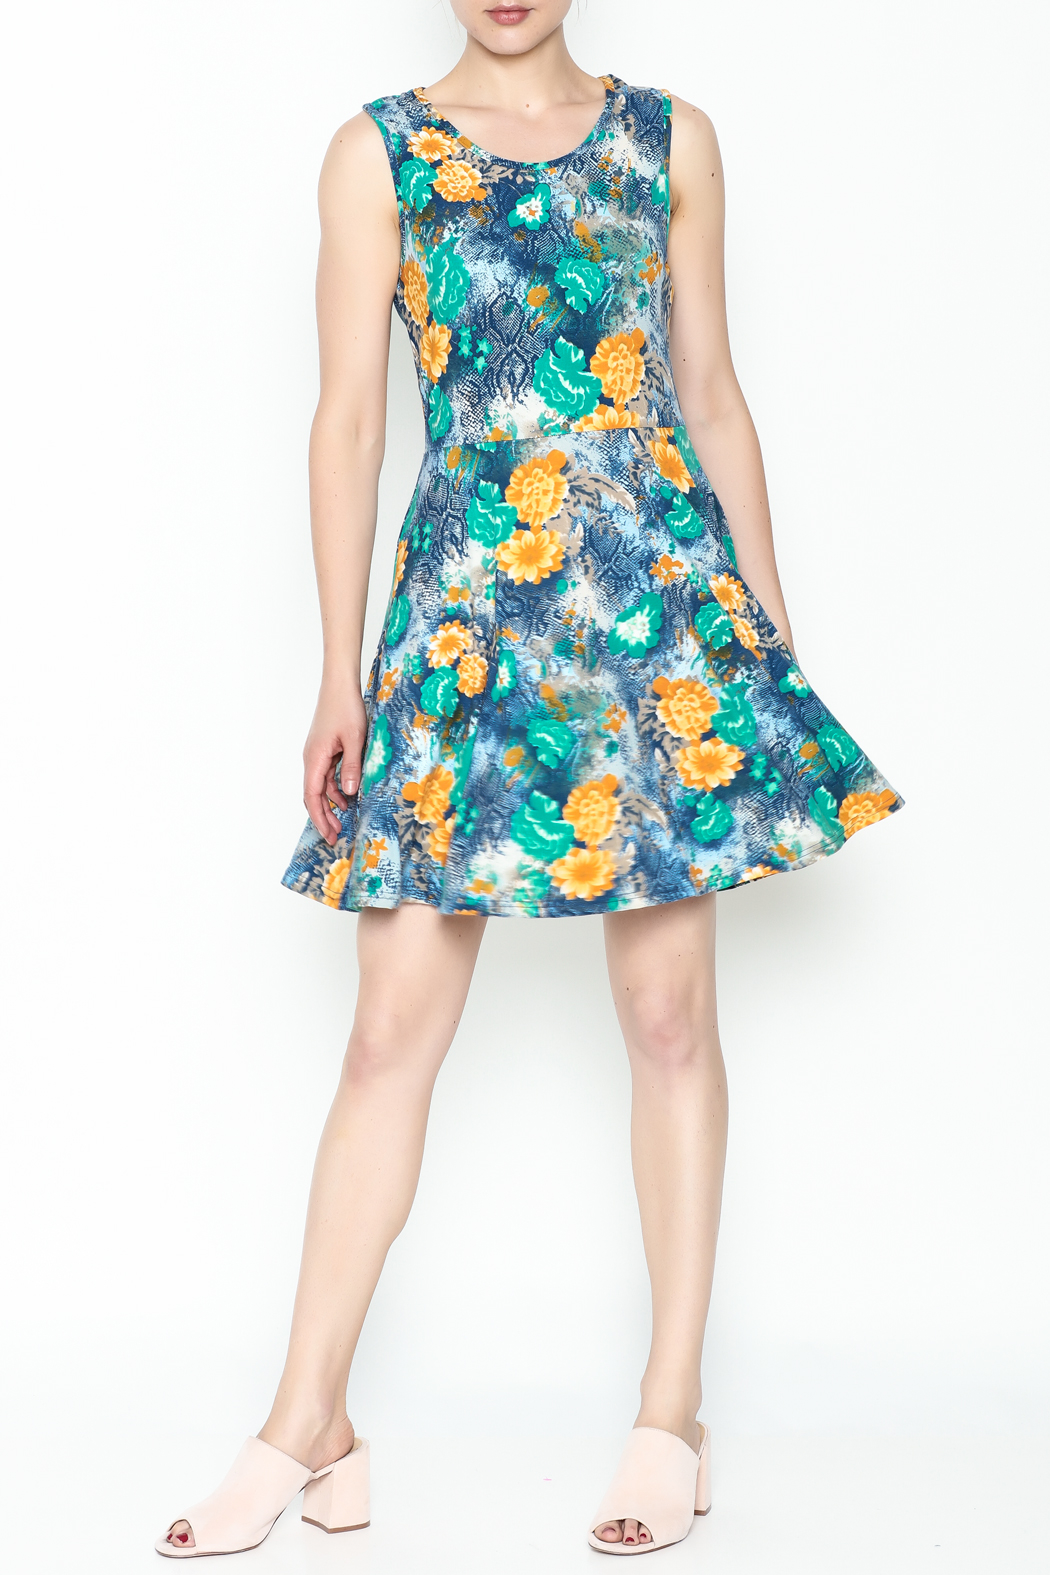 Jon & Anna Green Floral Dress - Side Cropped Image